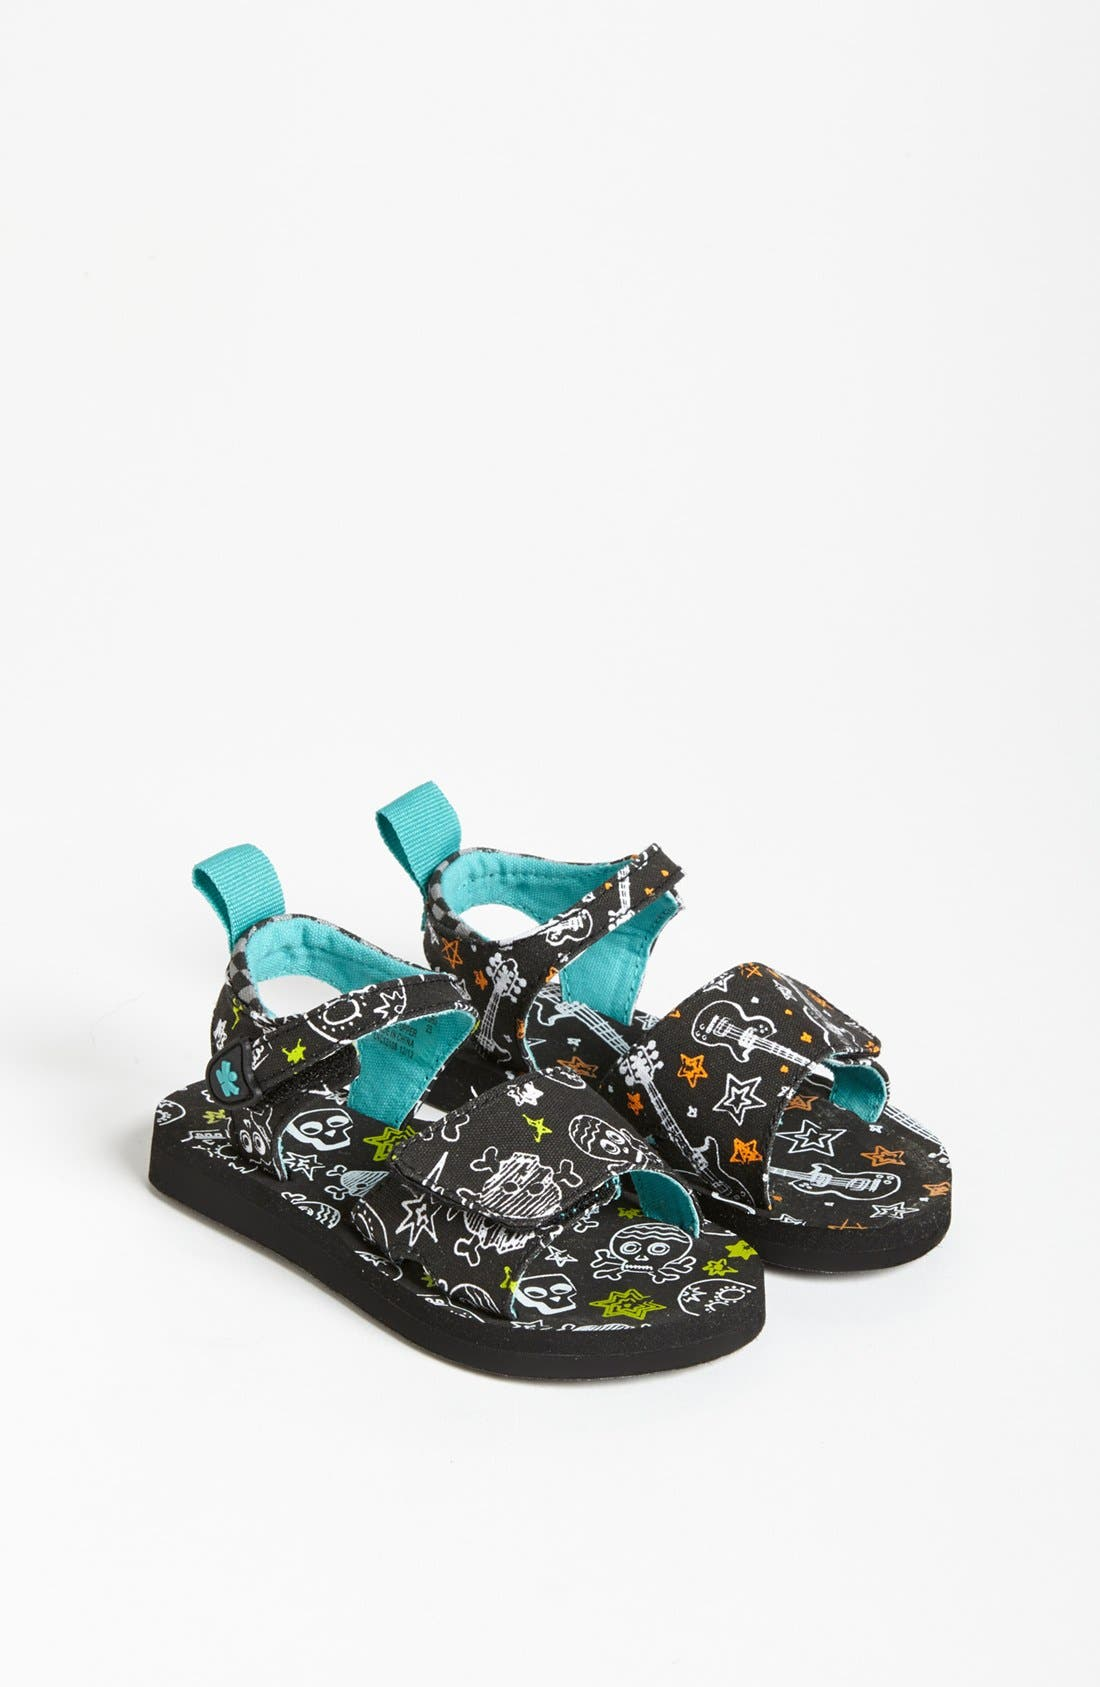 Alternate Image 1 Selected - CHOOZE 'Breeze - Rockout 2' Sandal (Baby, Walker & Toddler)